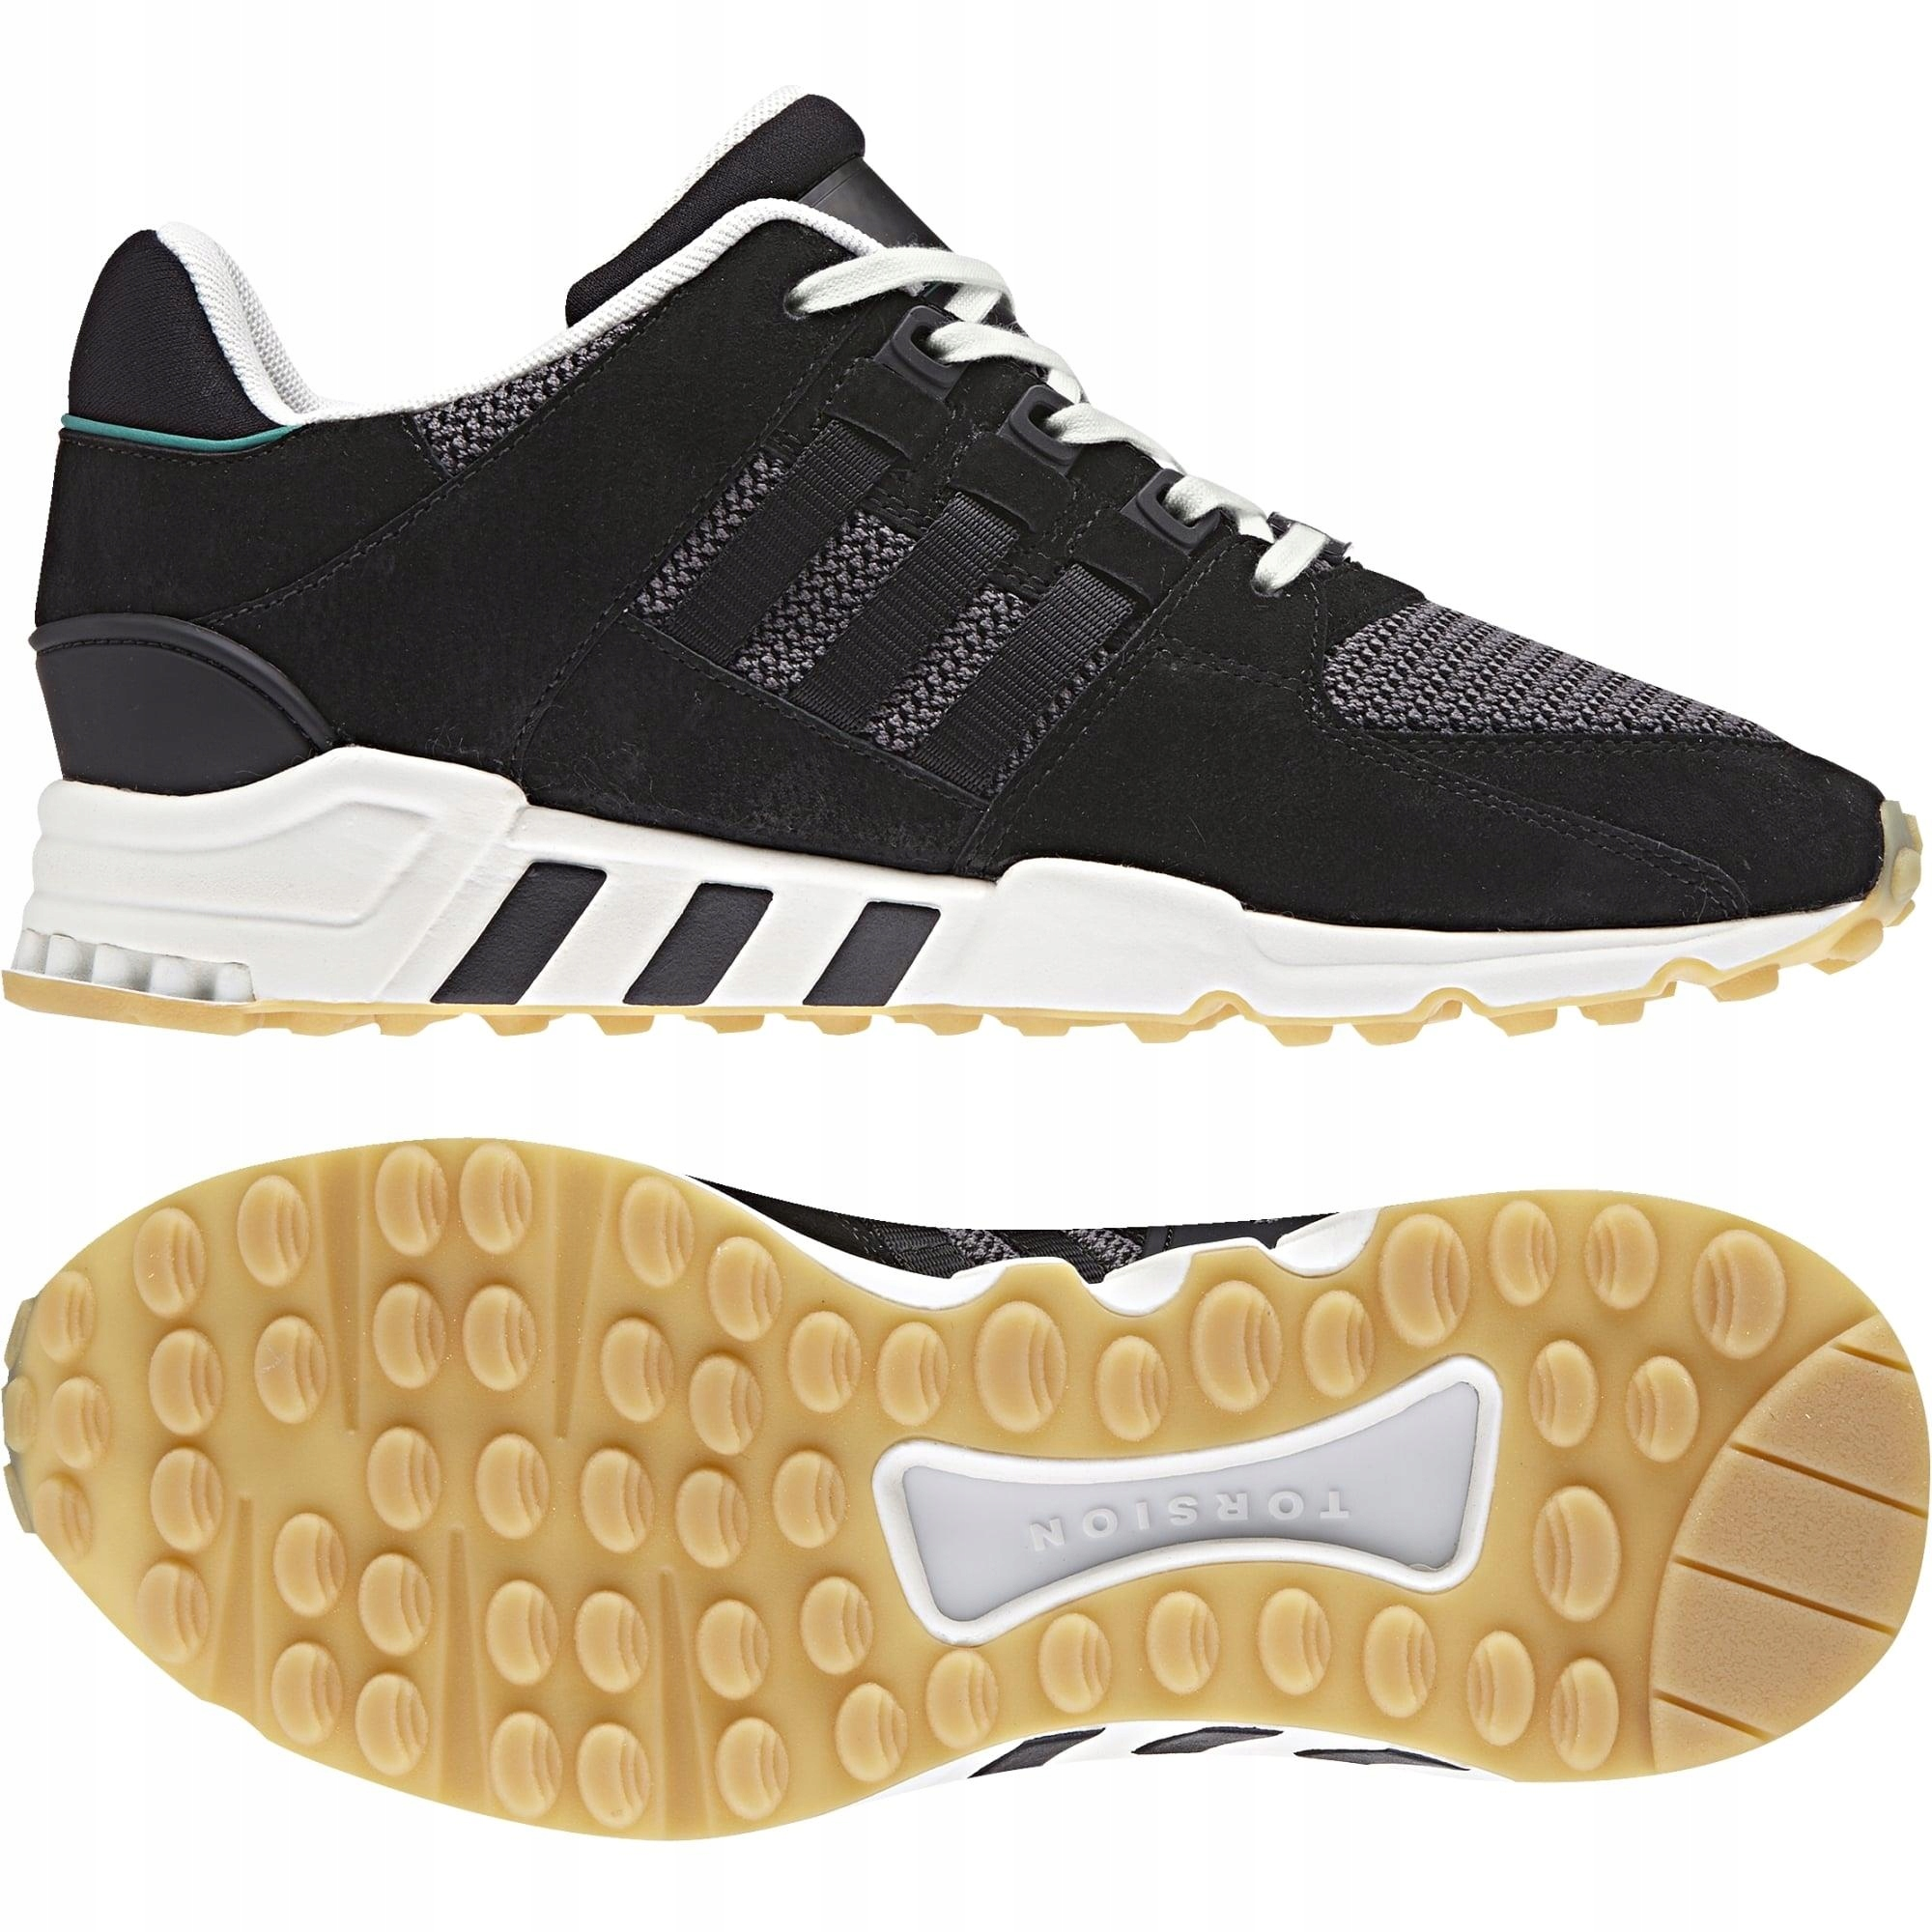 new style 2d518 57992 BUTY ADIDAS EQT SUPPORT RF CQ2172 r 36 23 (7631924112)